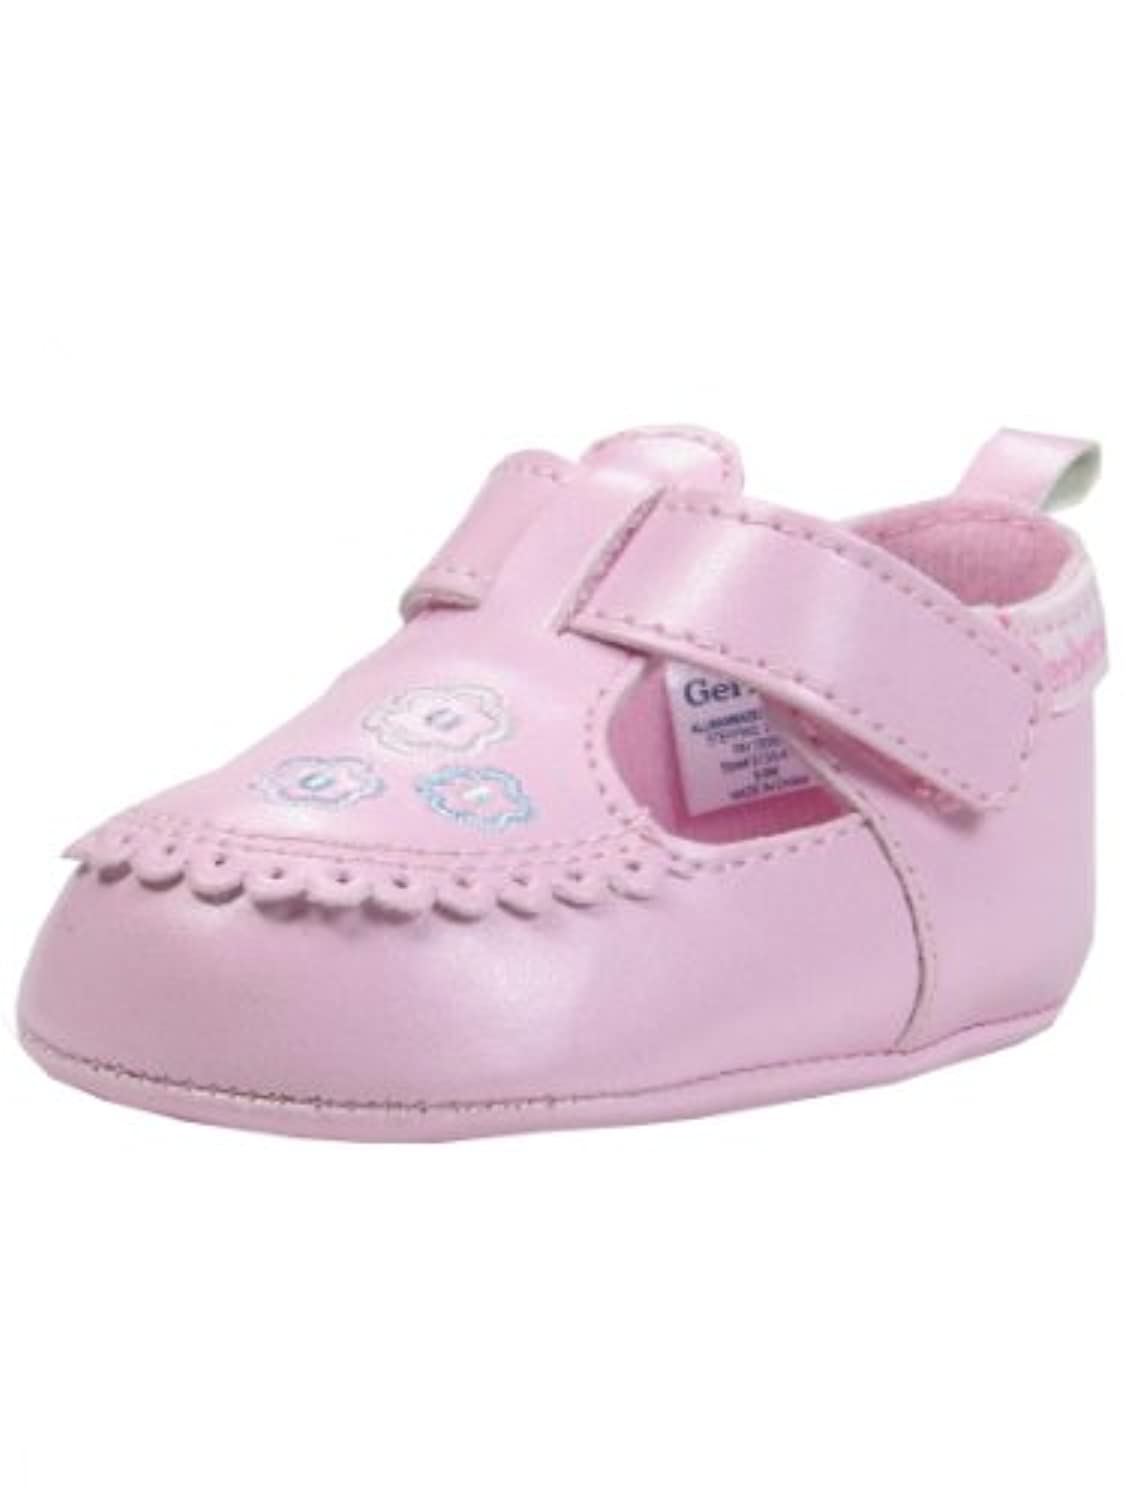 baby girl soft sole tstrap crib shoes by gerber pink